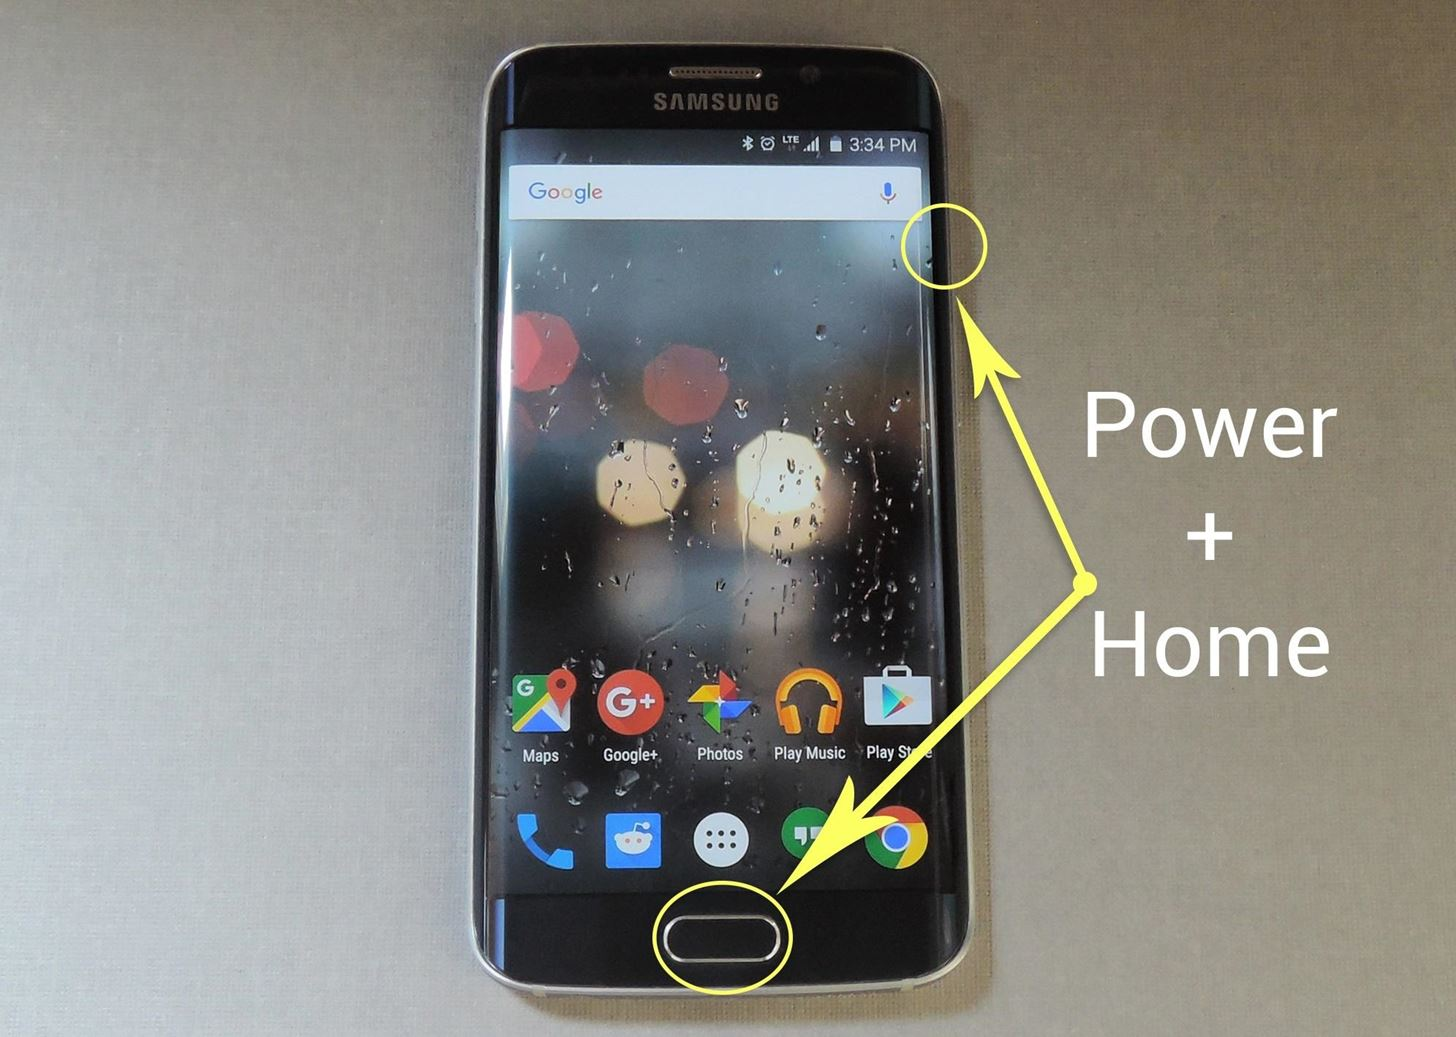 Android Basics: How to Take a Screenshot on Any Phone or